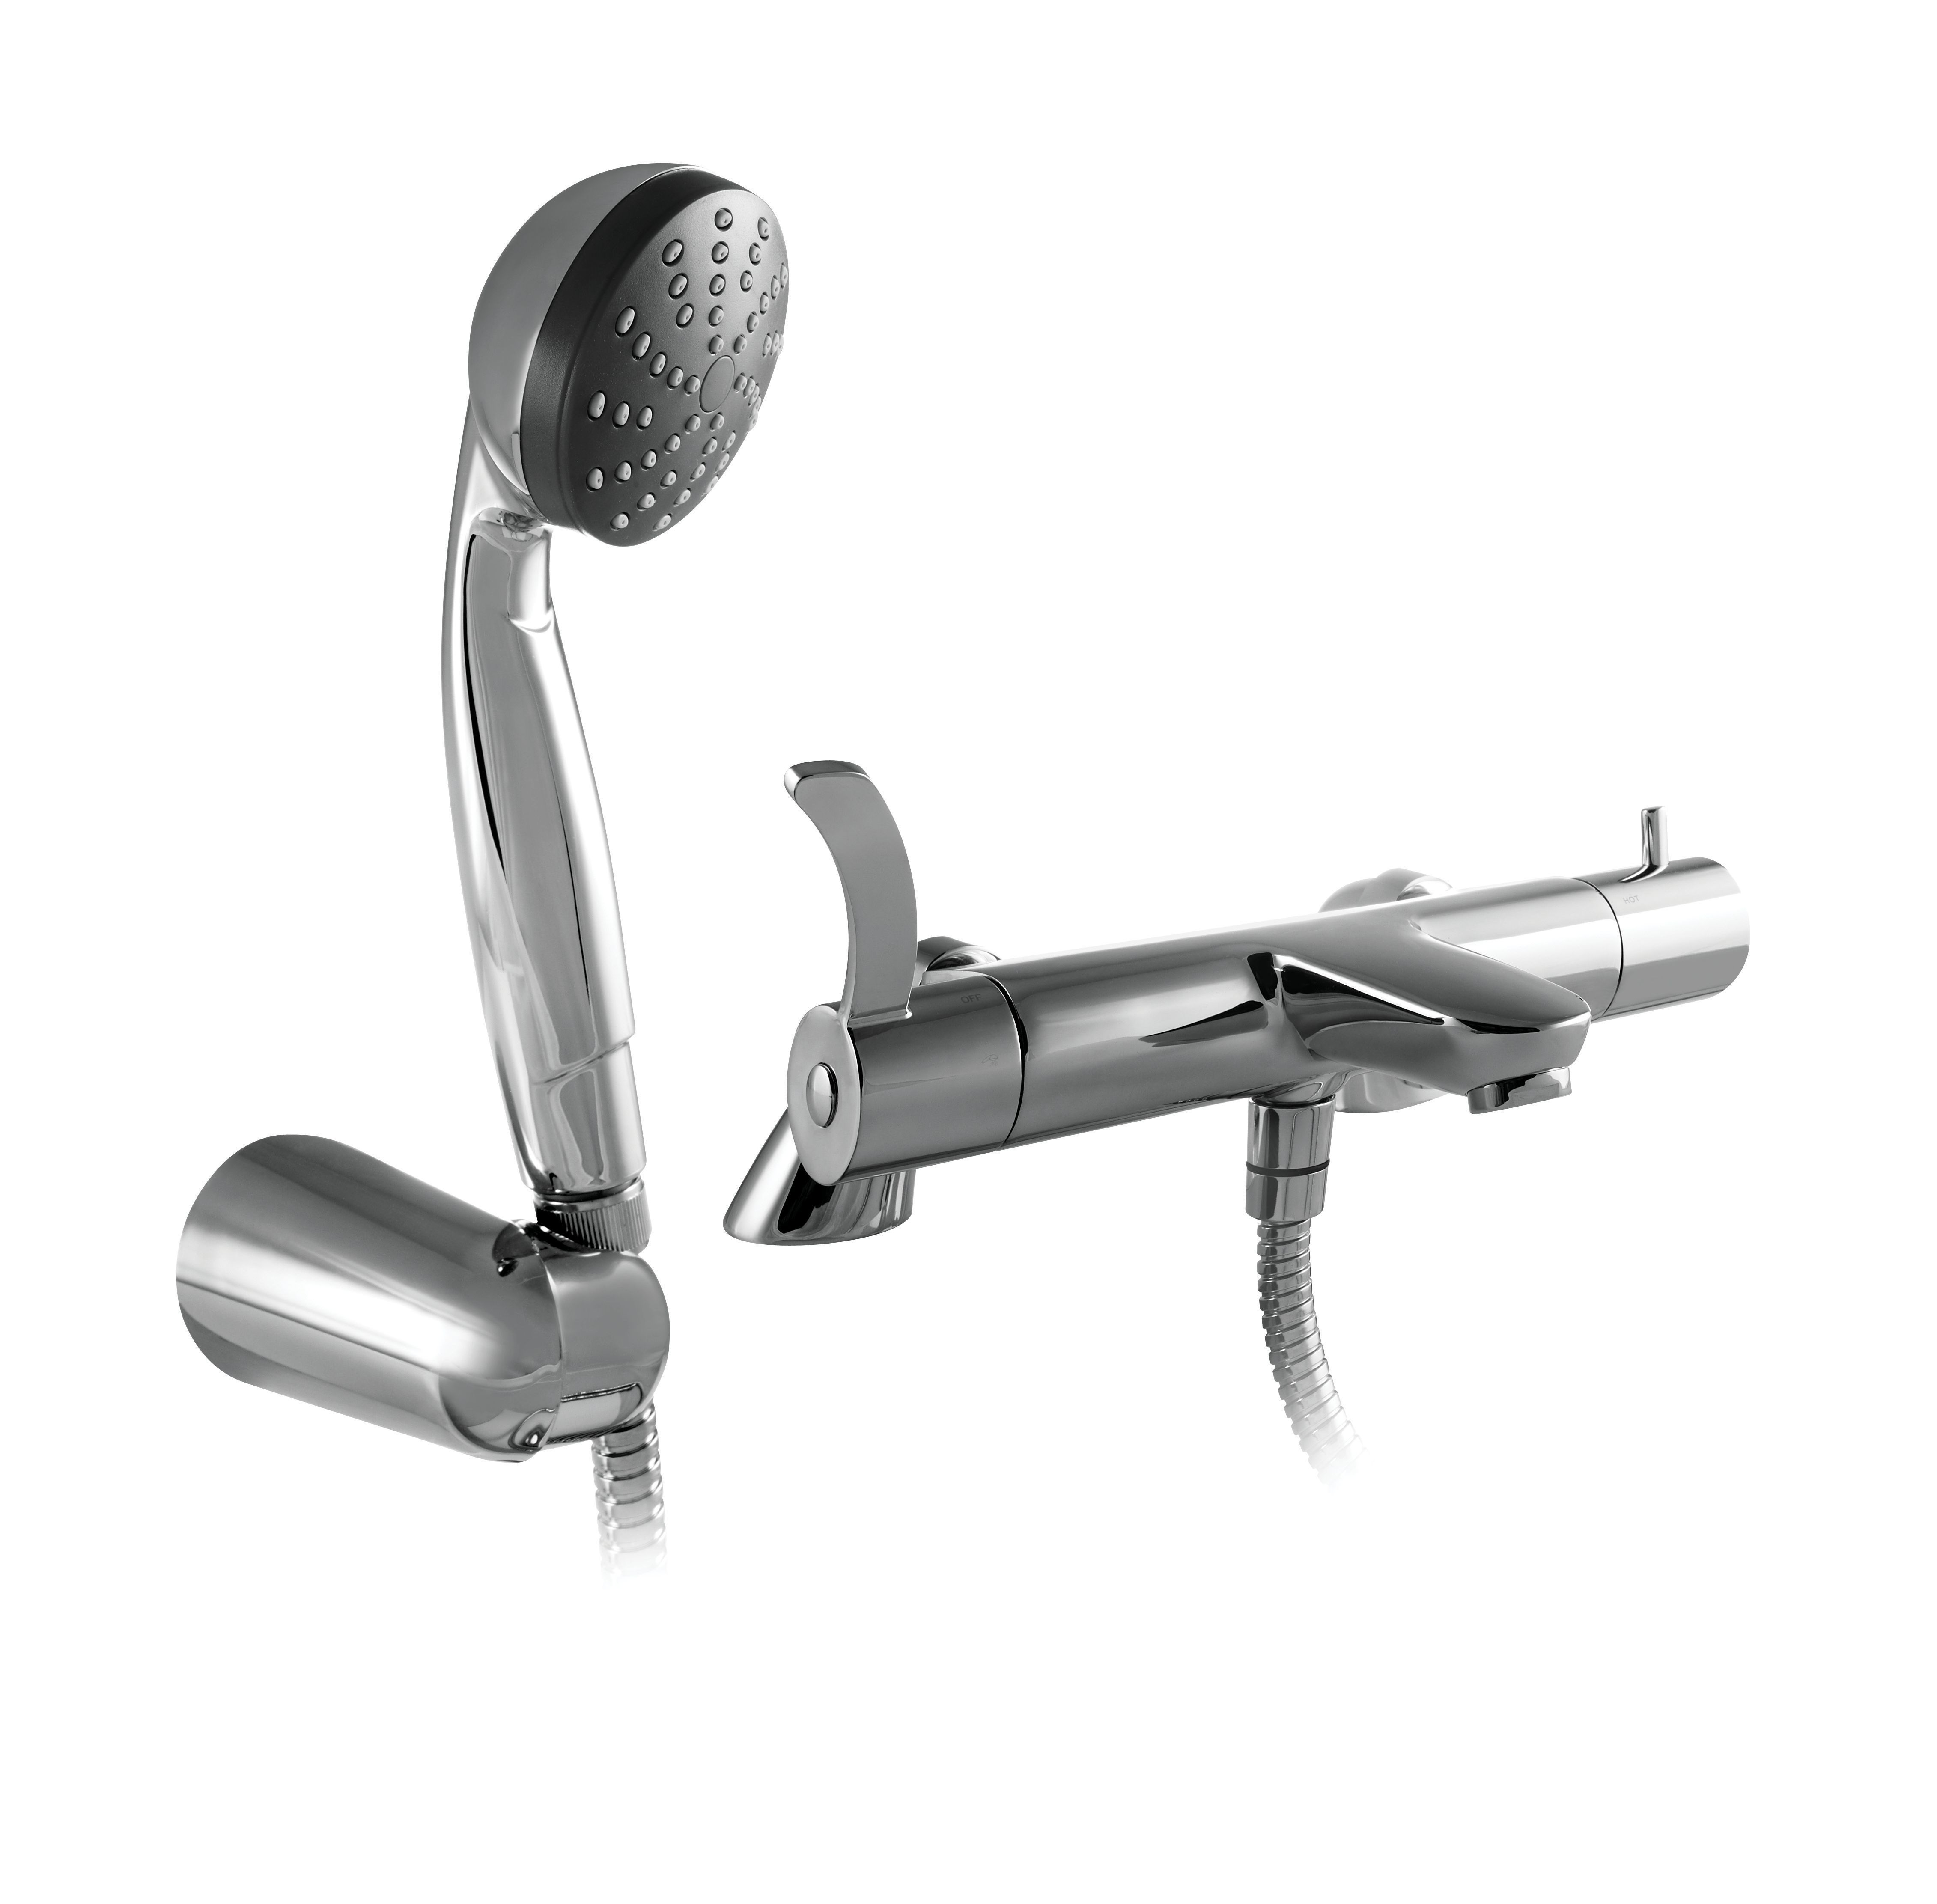 Wickes Aprillo Thermostatic Bath Shower Mixer Tap | Wickes.co.uk ...